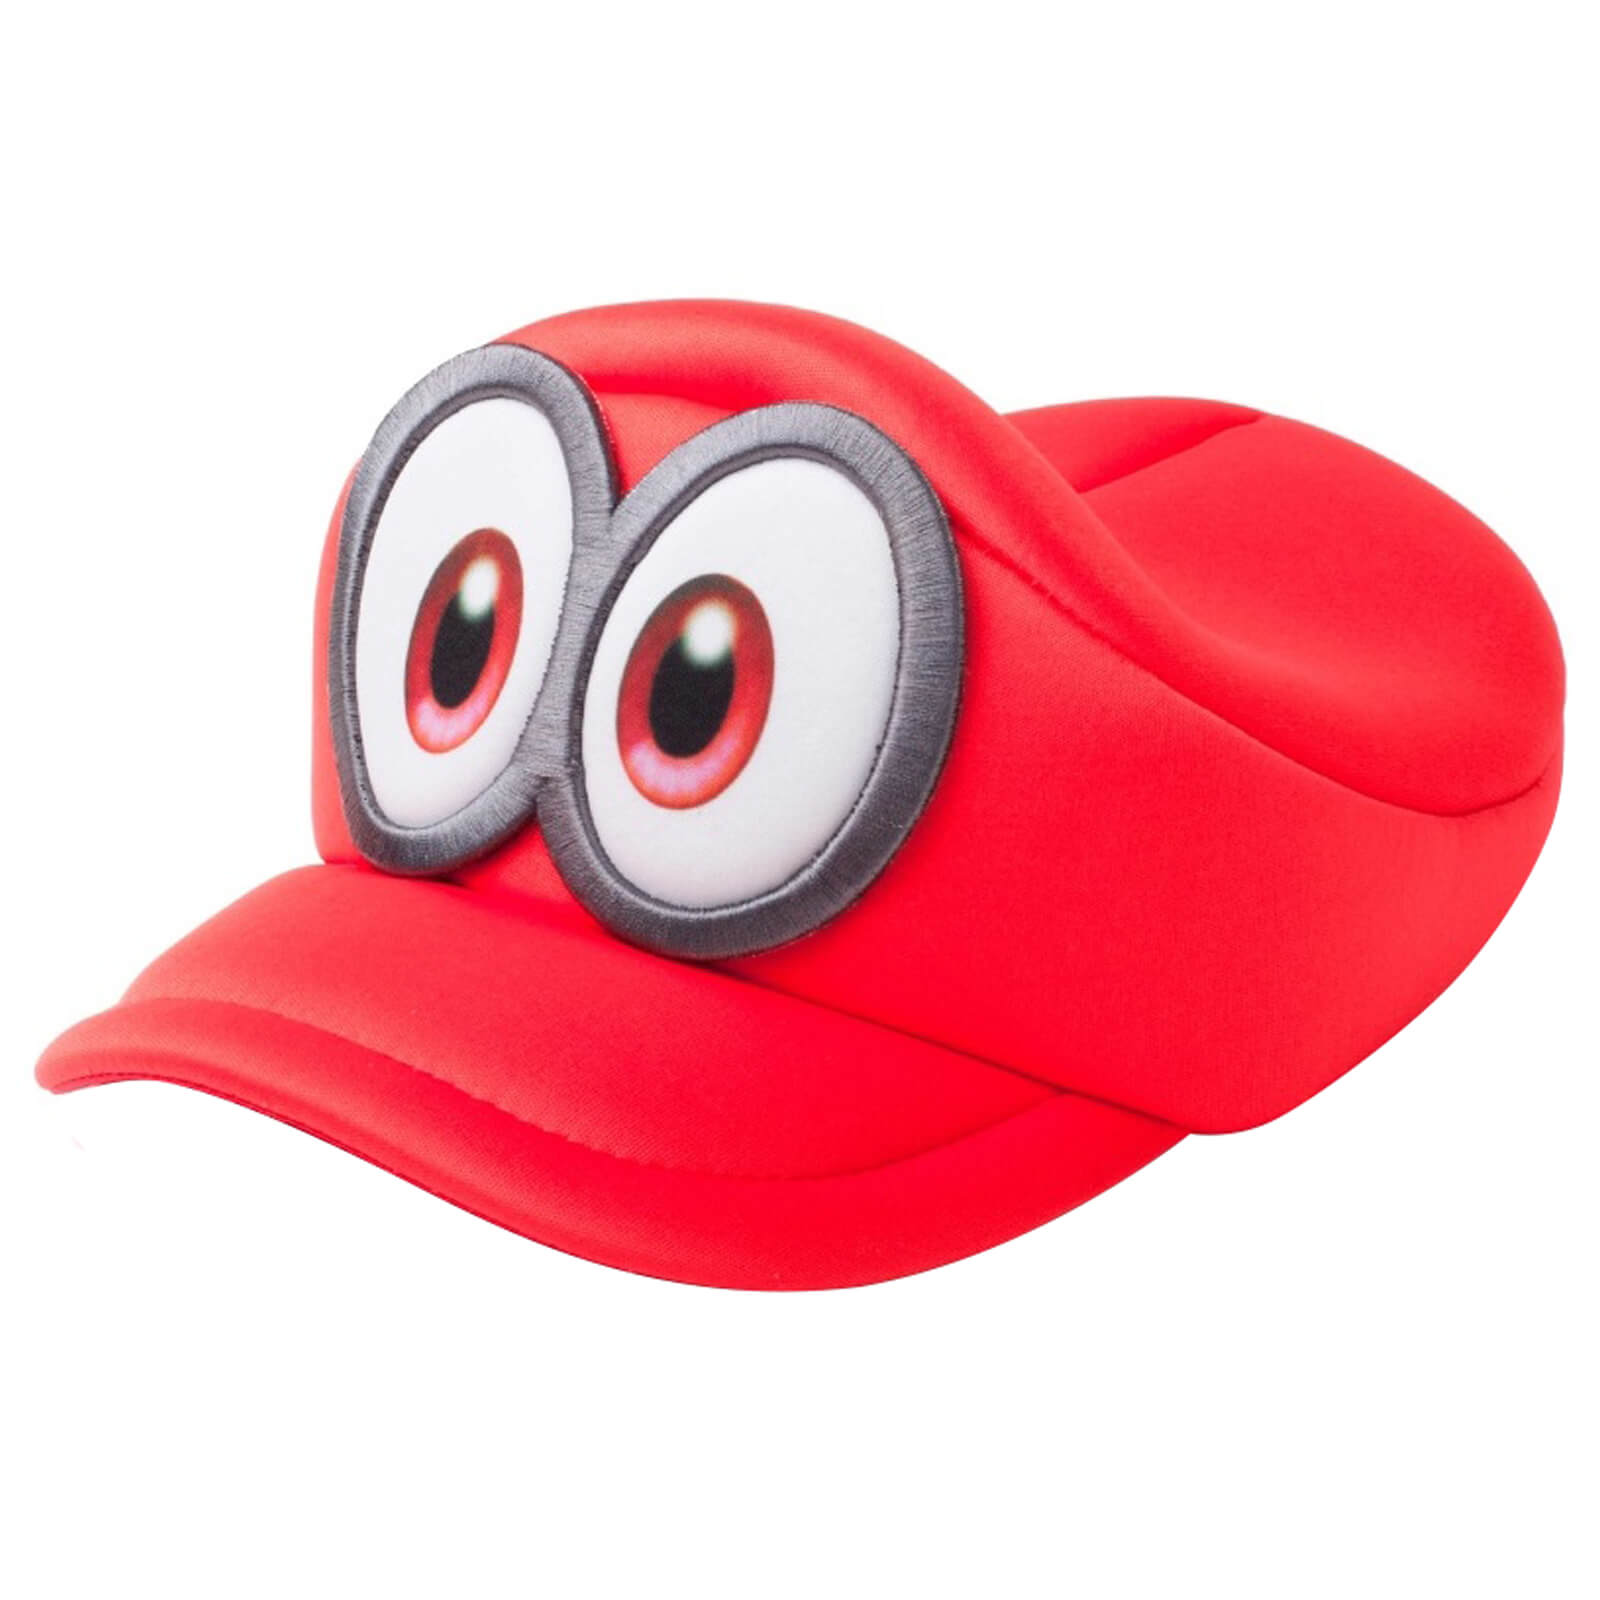 ed09d239097 This cappy hat is perfect for any fan of Mario and Super Mario Odyssey for  Nintendo Switch.